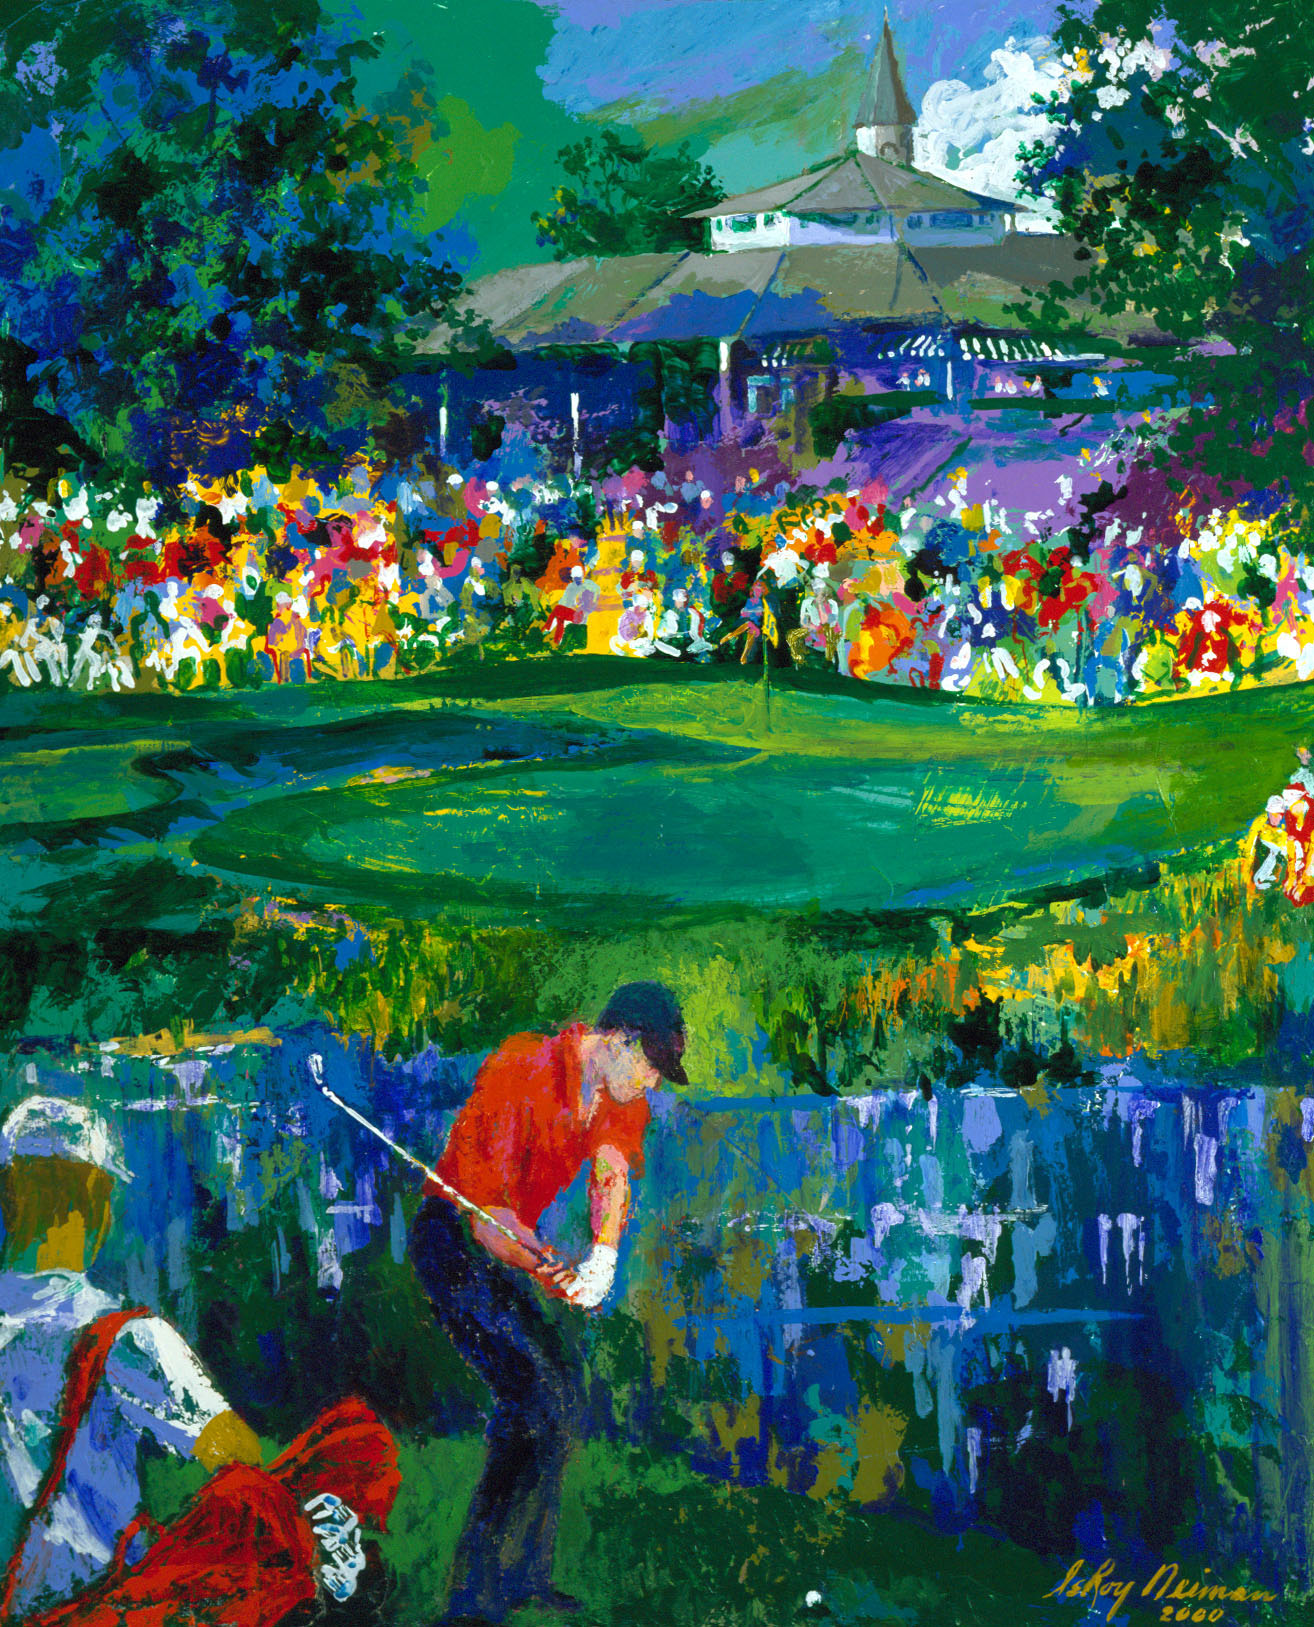 Valhalla  (Tiger Woods)  2000 by LeRoy Neiman